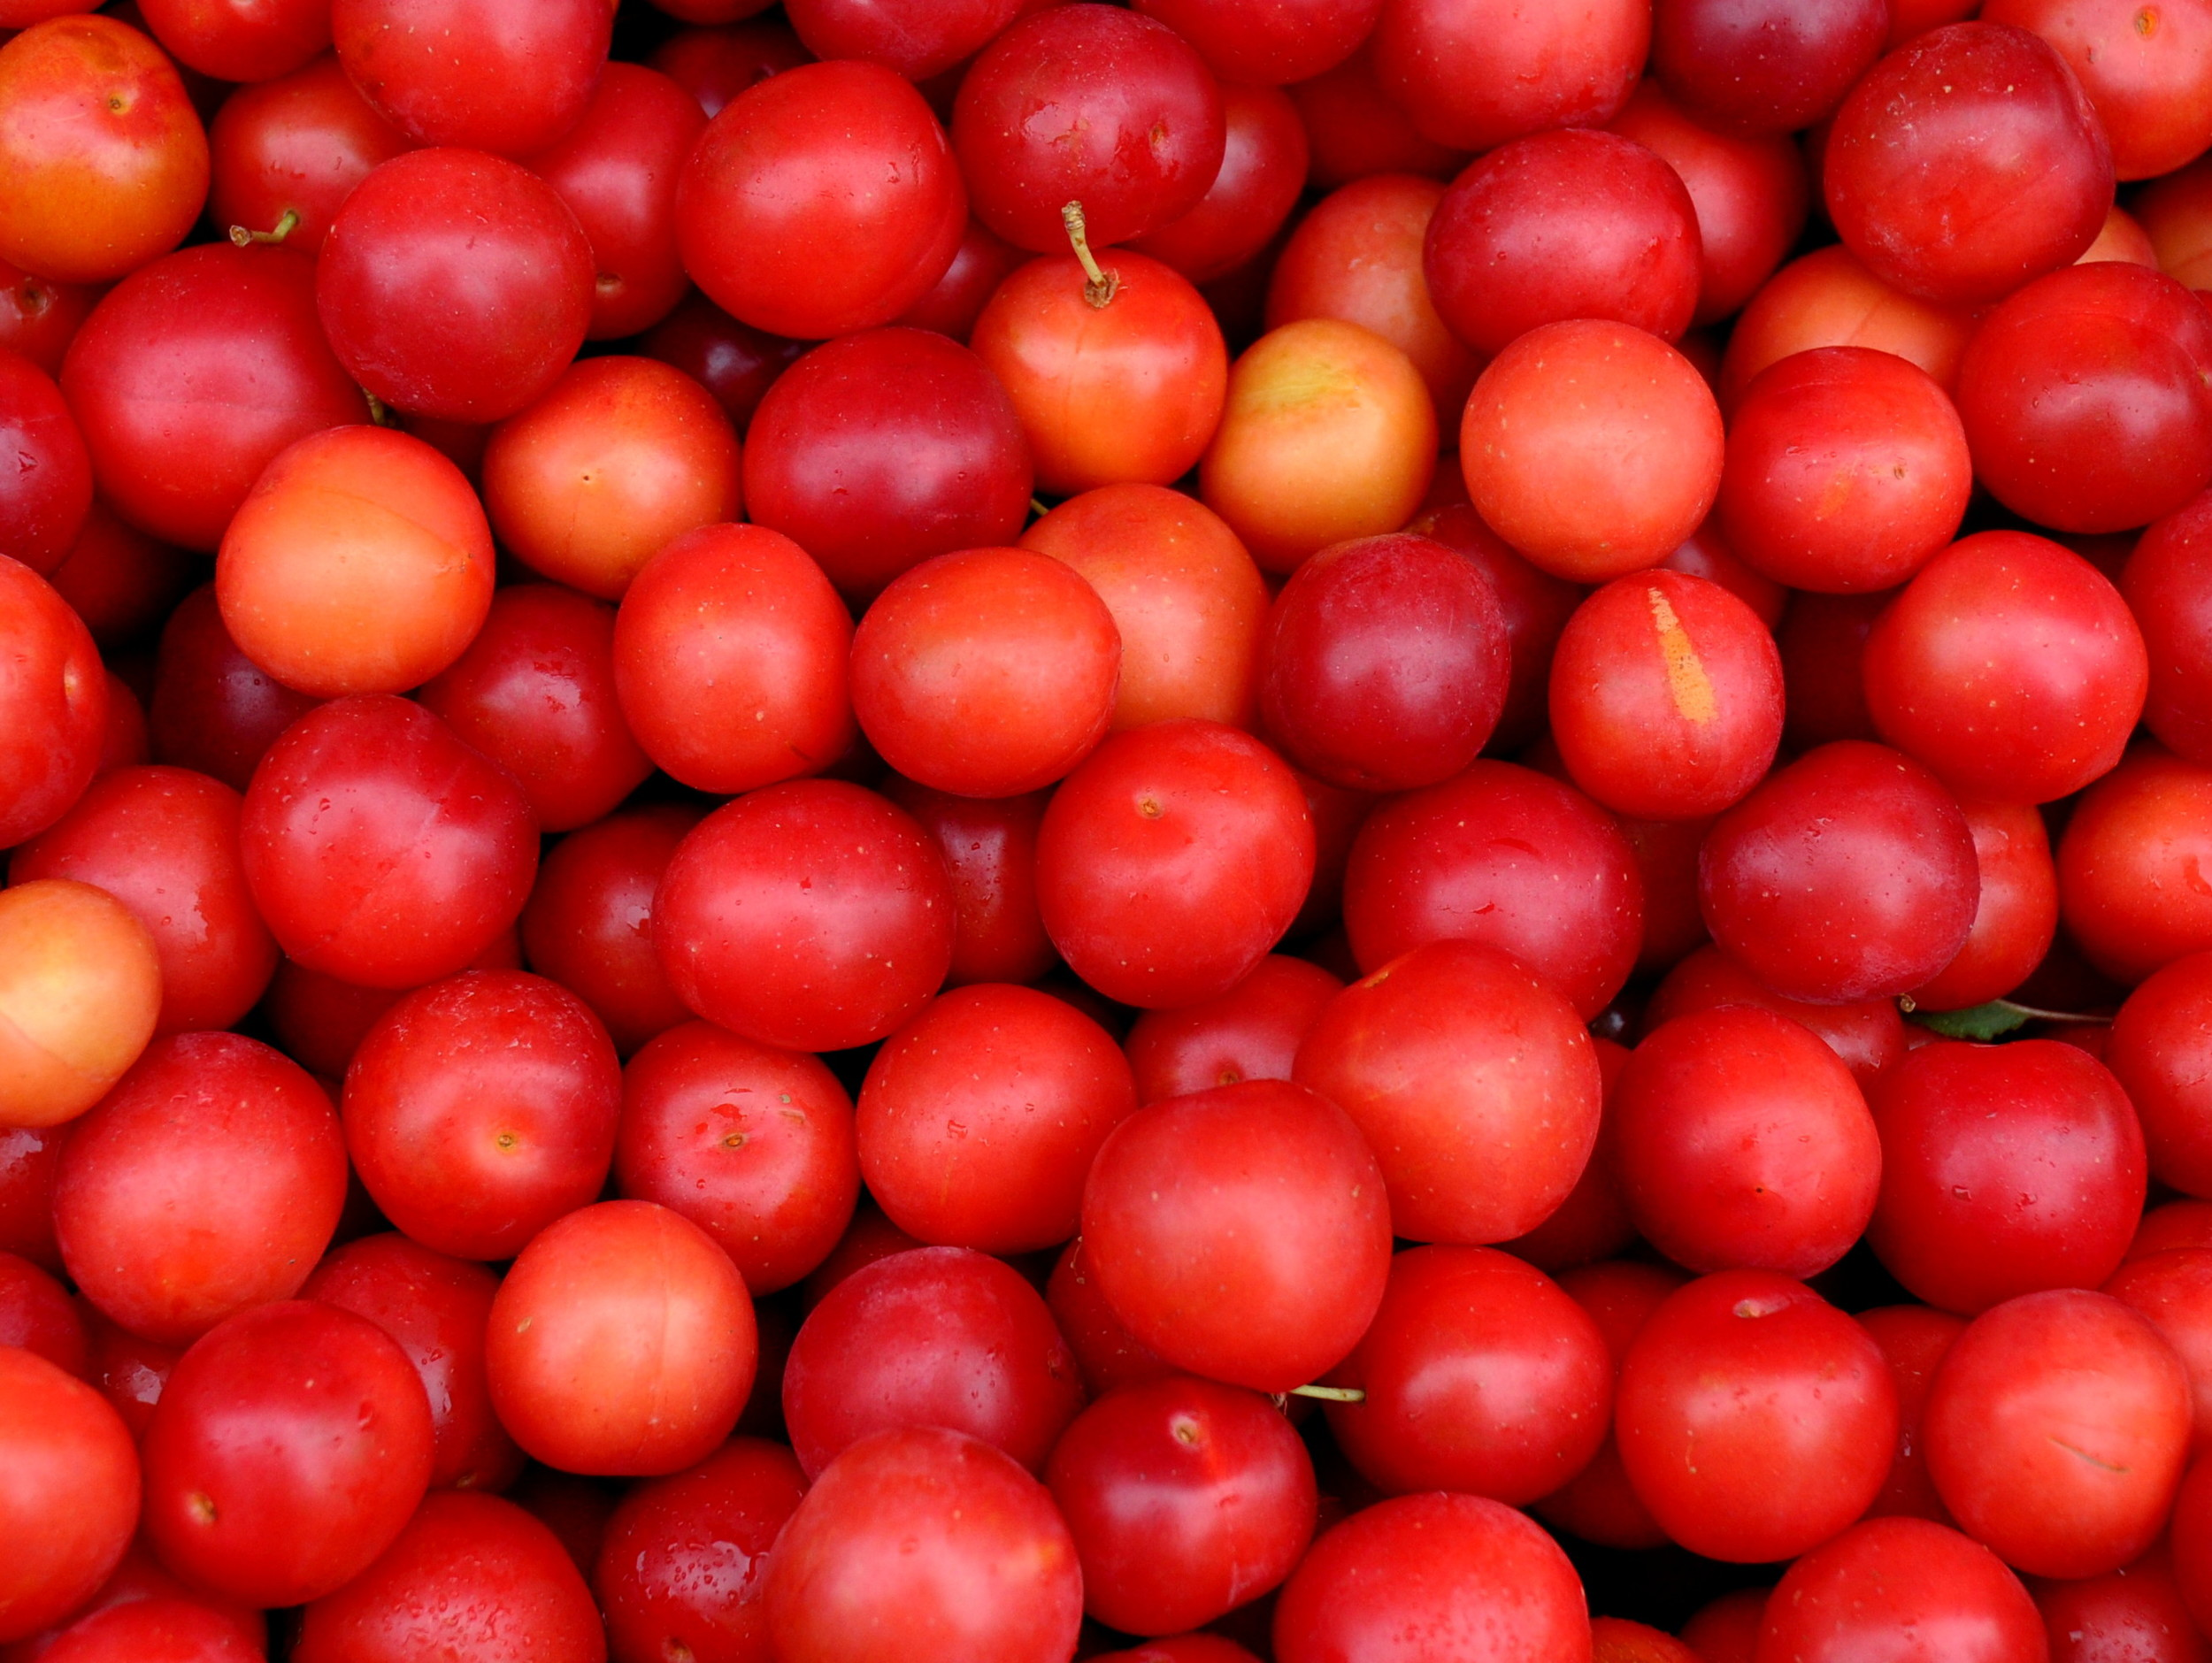 Cherry plums from Tiny's Organic Produce. Photo copyright 2013 by Zachary D. Lyons.